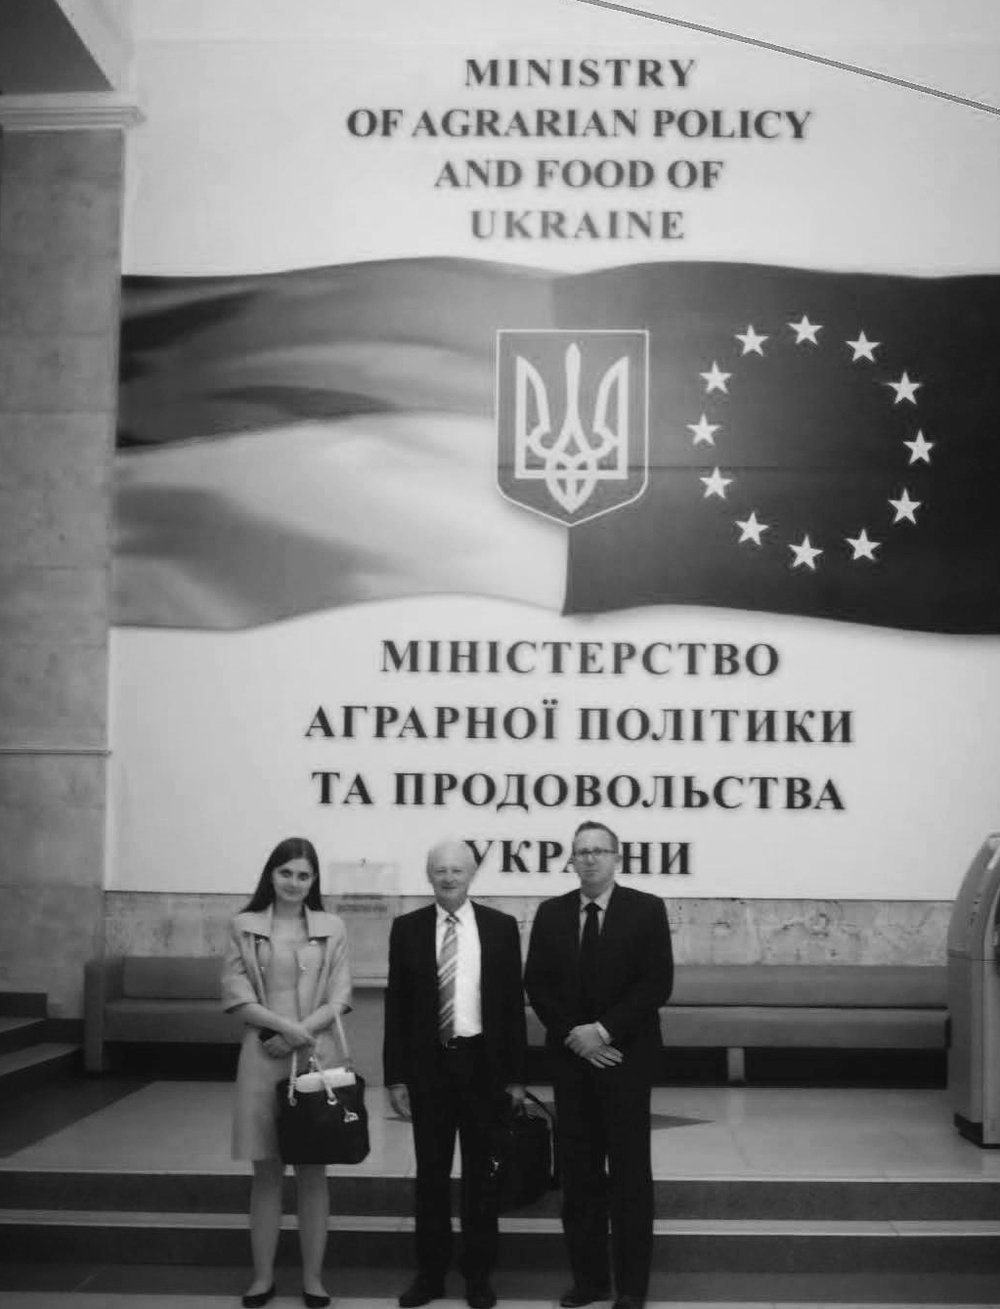 Professor Ross Kingwell and Chris Carter, with Australian Embassy representative Anna Shcherbak, prior to visiting the Ukrainian Ministry of Agrarian Policy and food, 2016